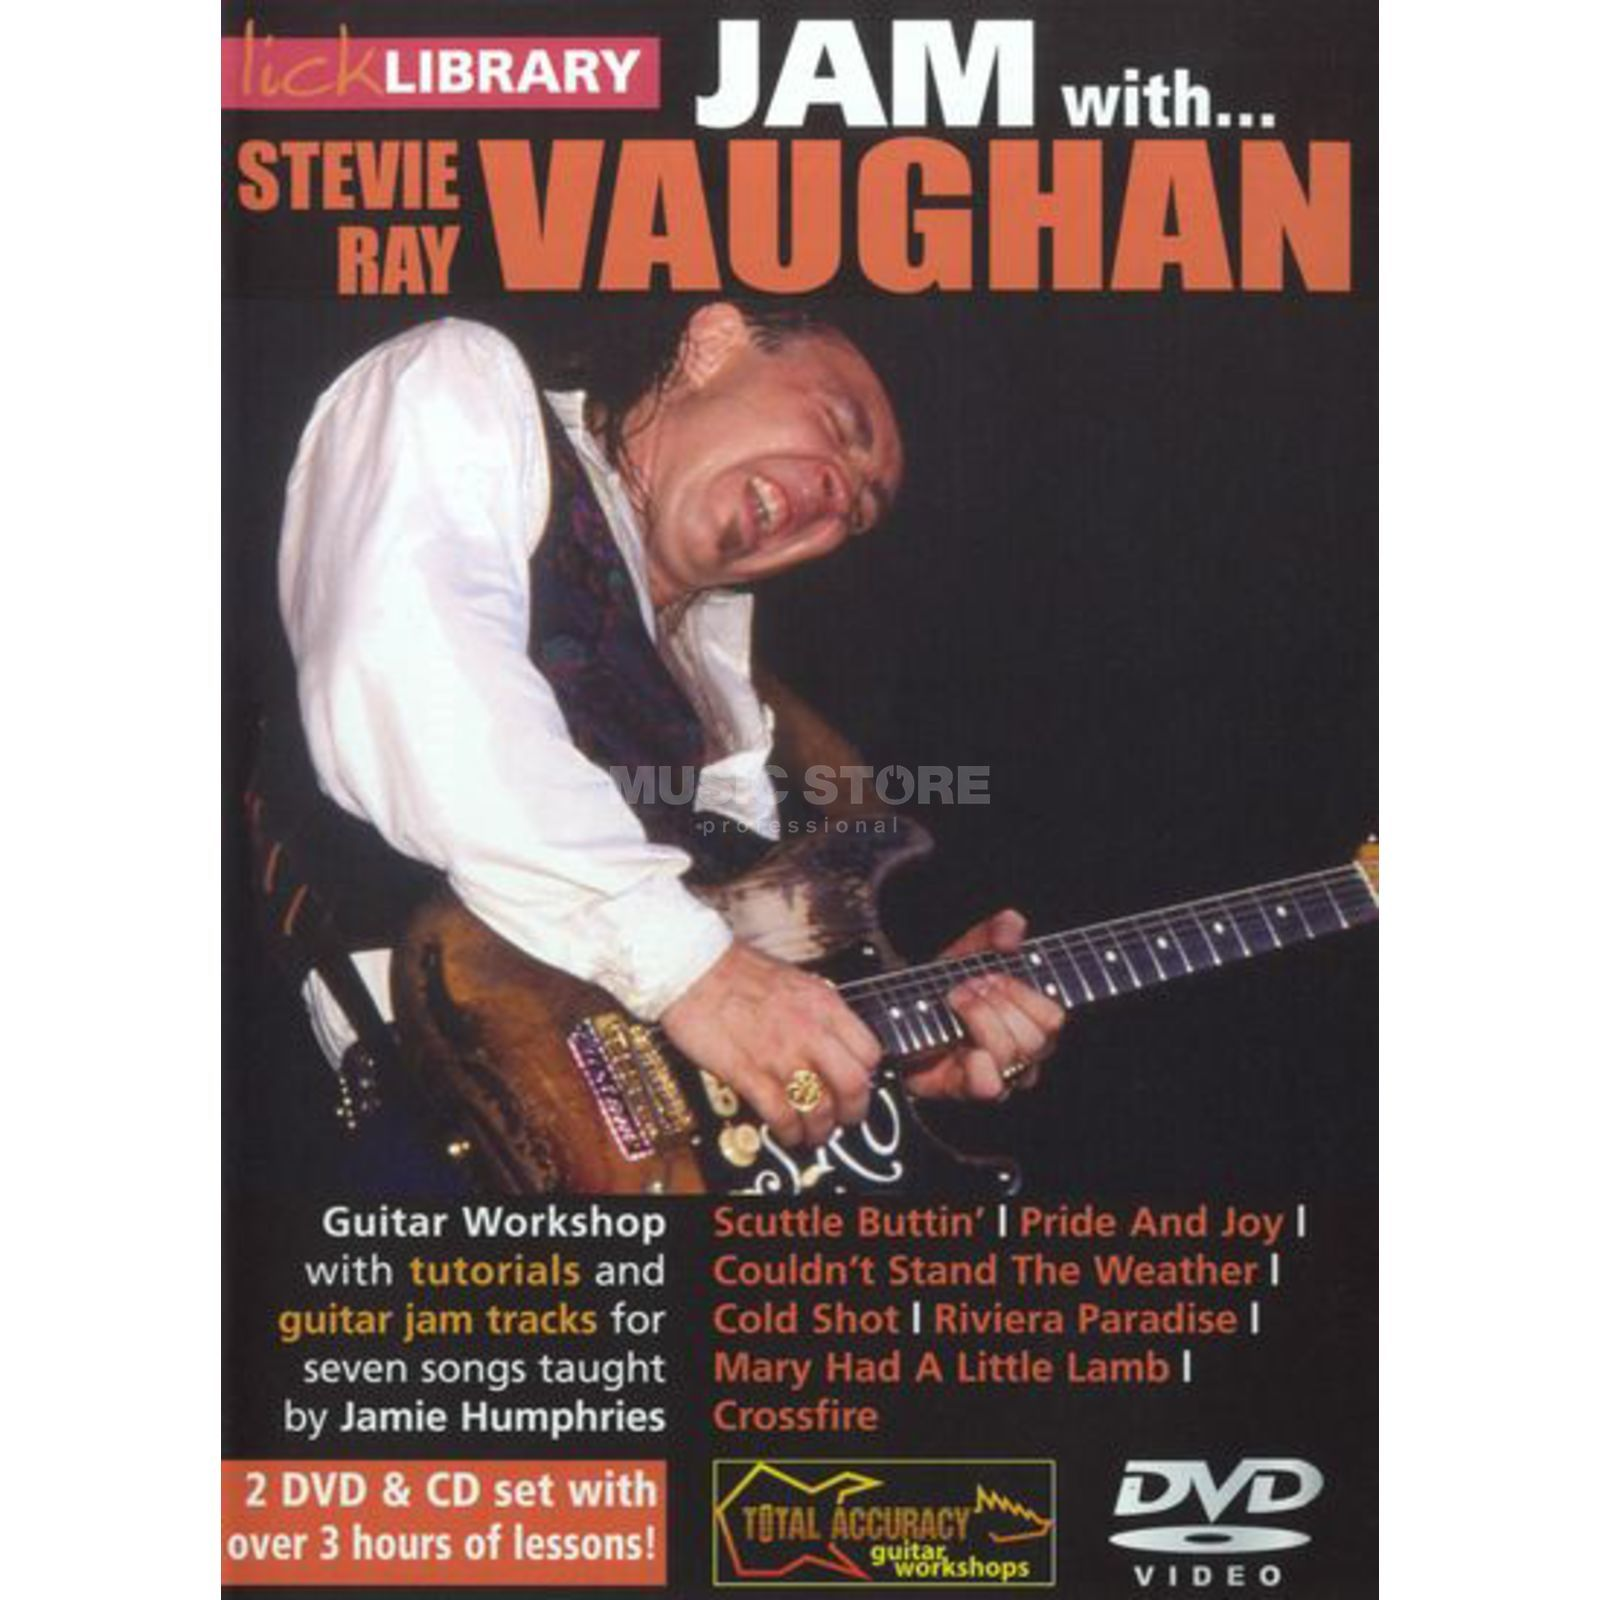 Roadrock International Lick Library: Jam With Stevie Ray Vaughan DVD, CD Produktbillede